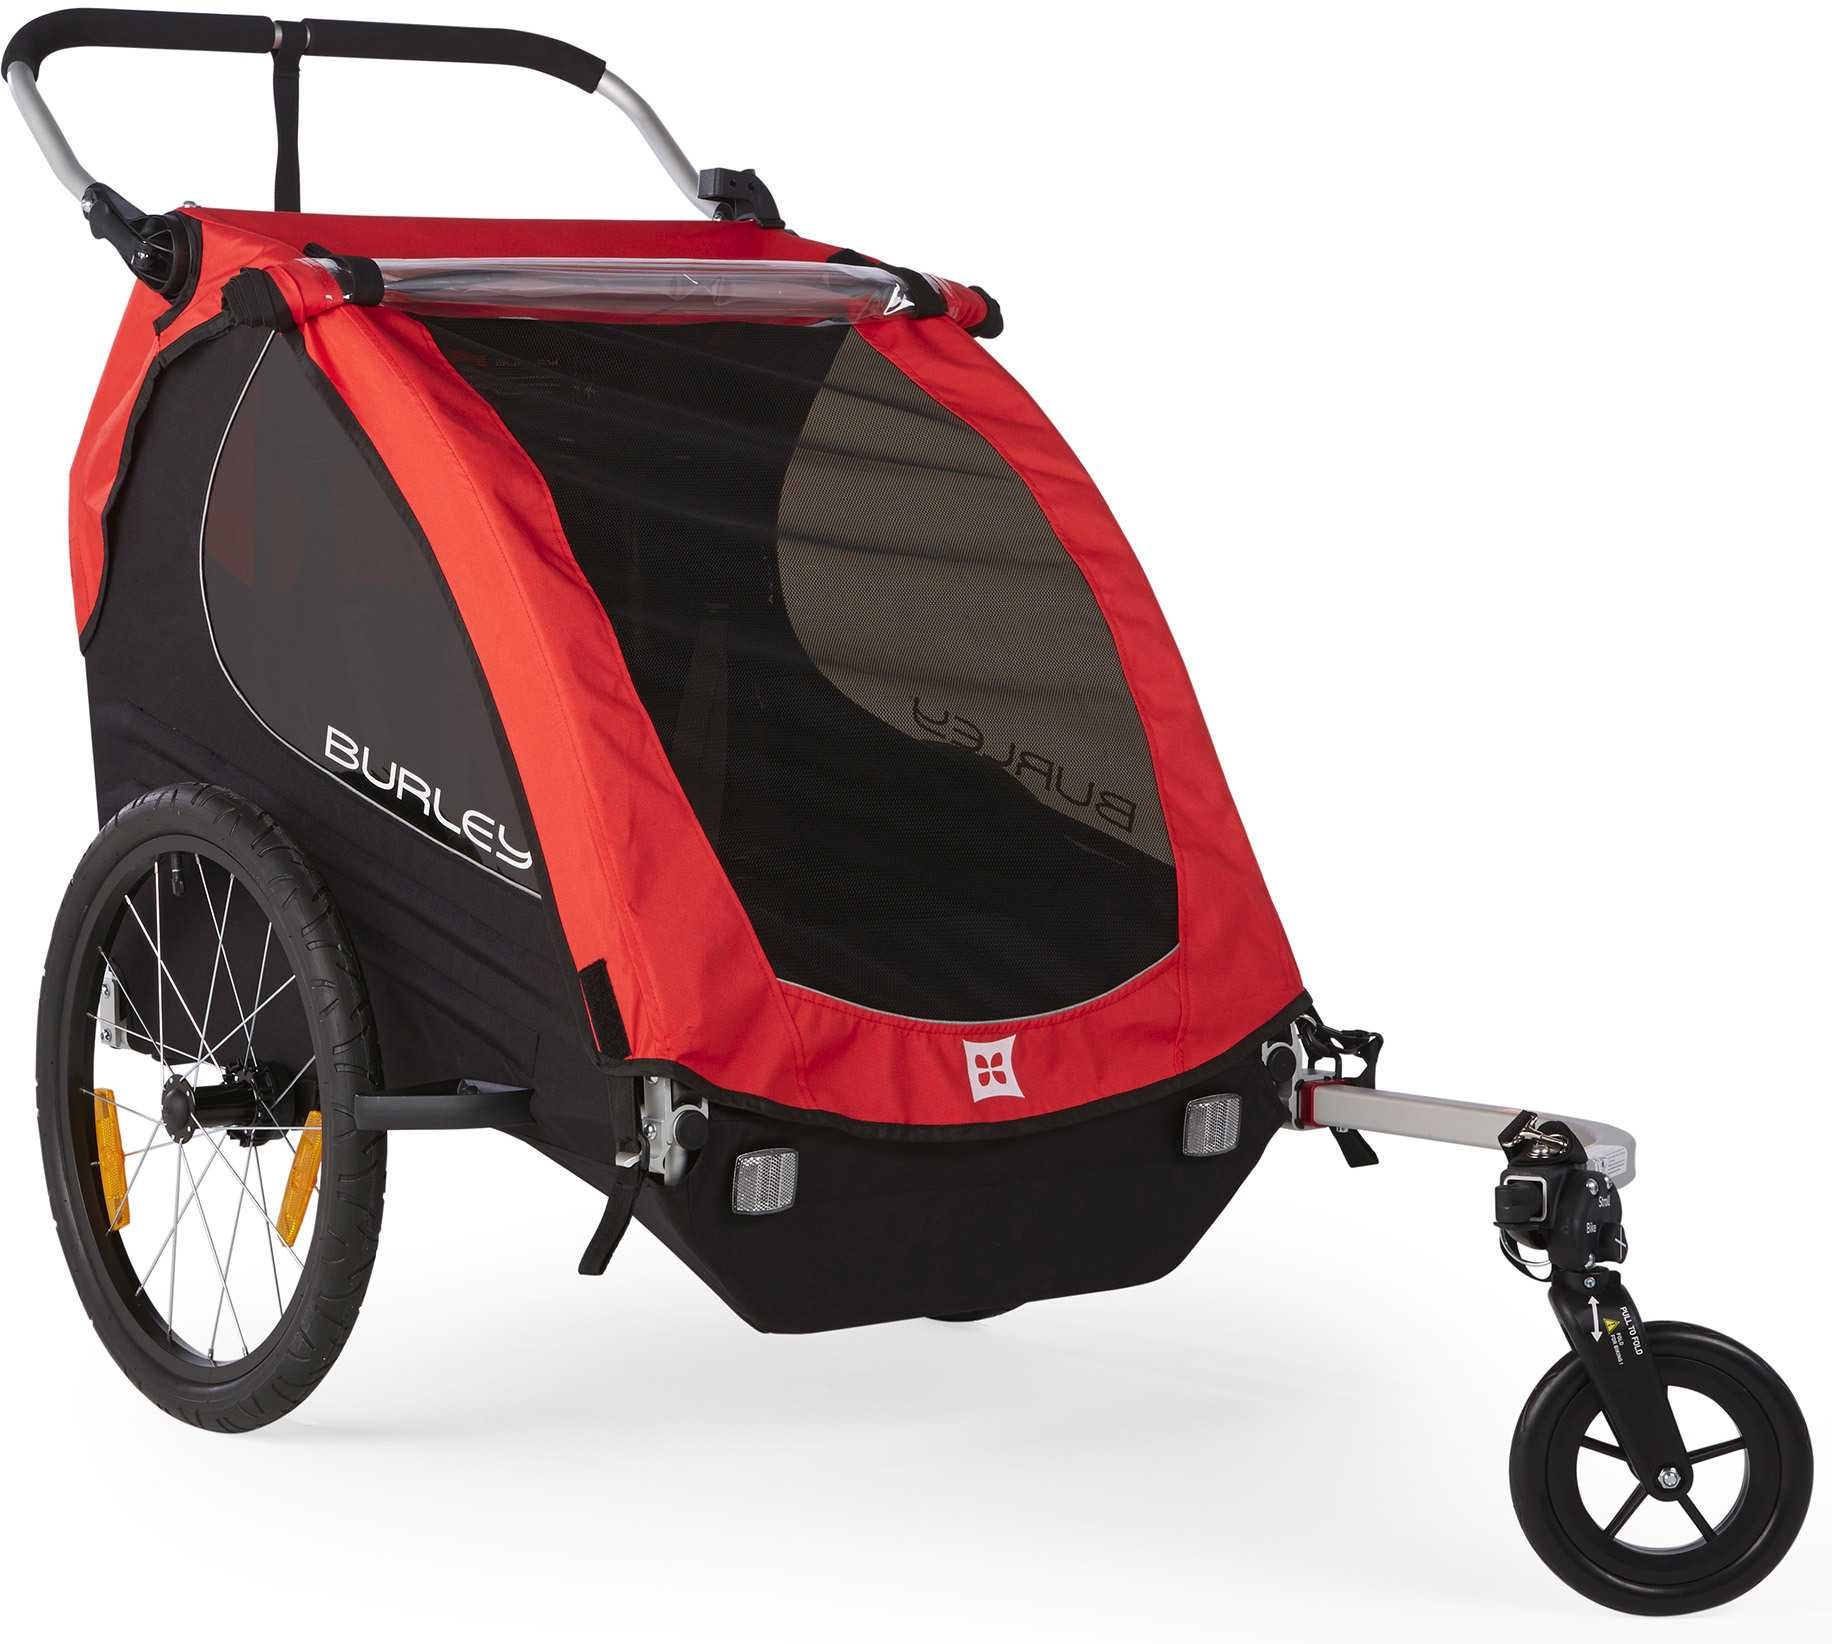 Cykelvagn Burley Honey Bee med Stroller 2 barn röd